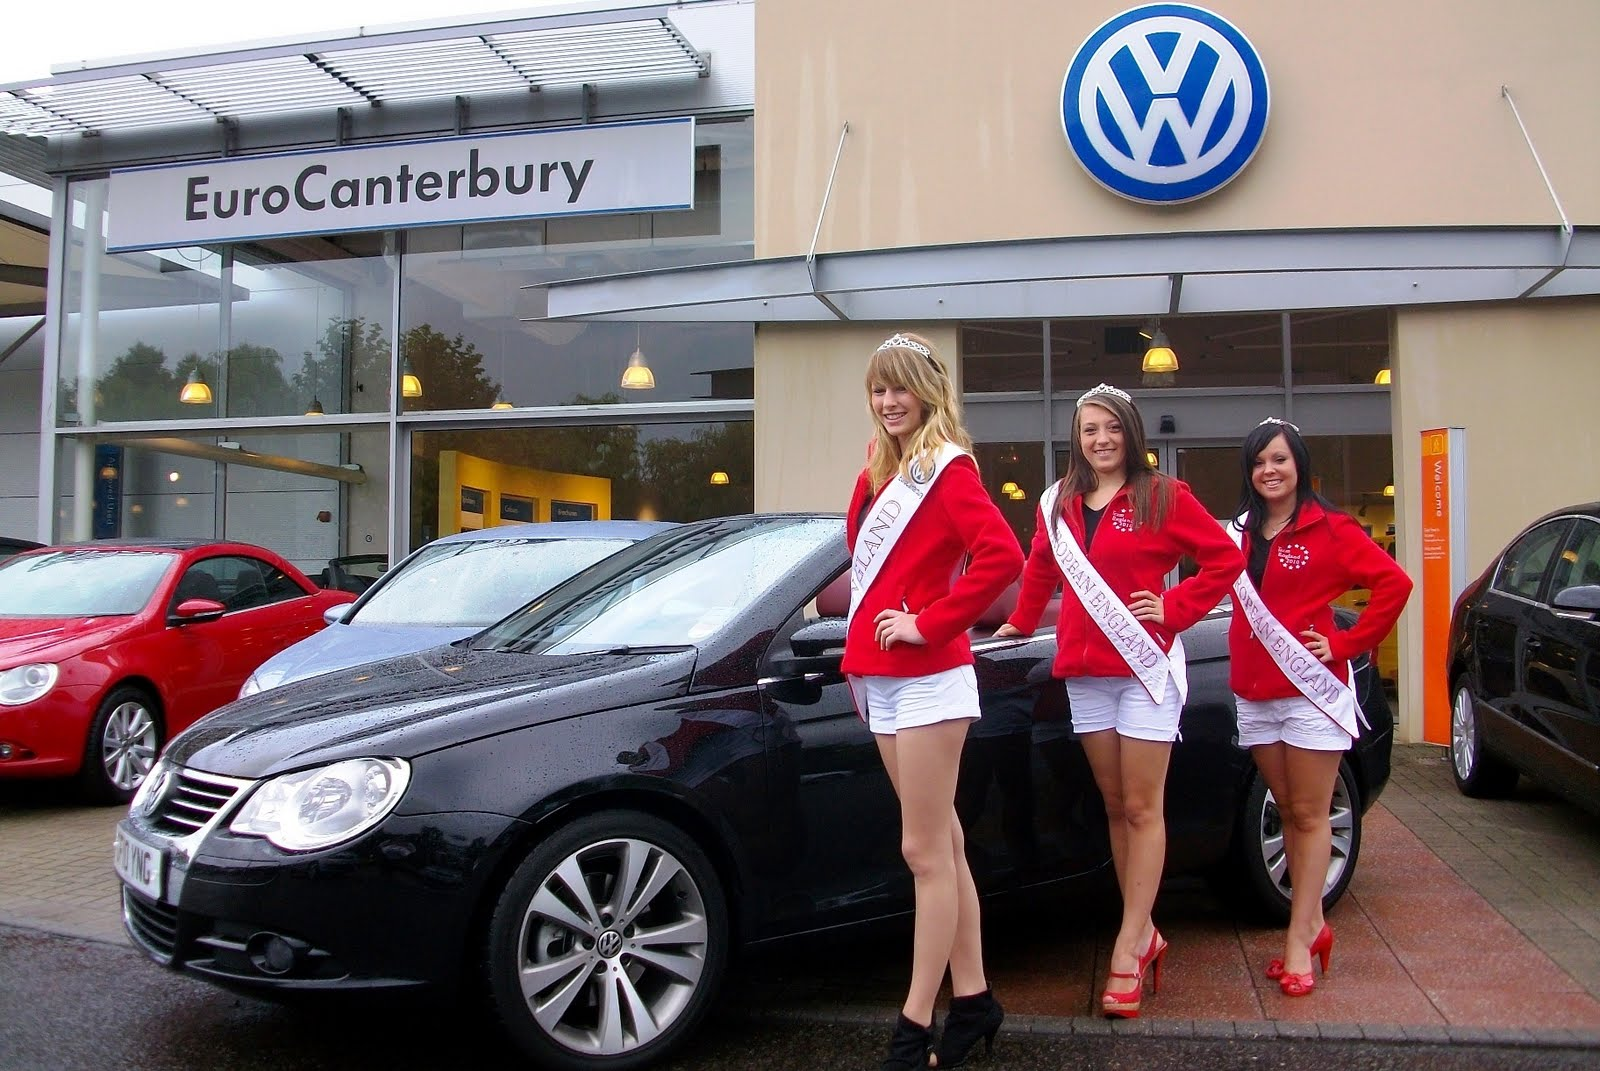 CONNECTIONS: CAR RETAILER SUPPORTS LOCAL BEAUTY QUEEN